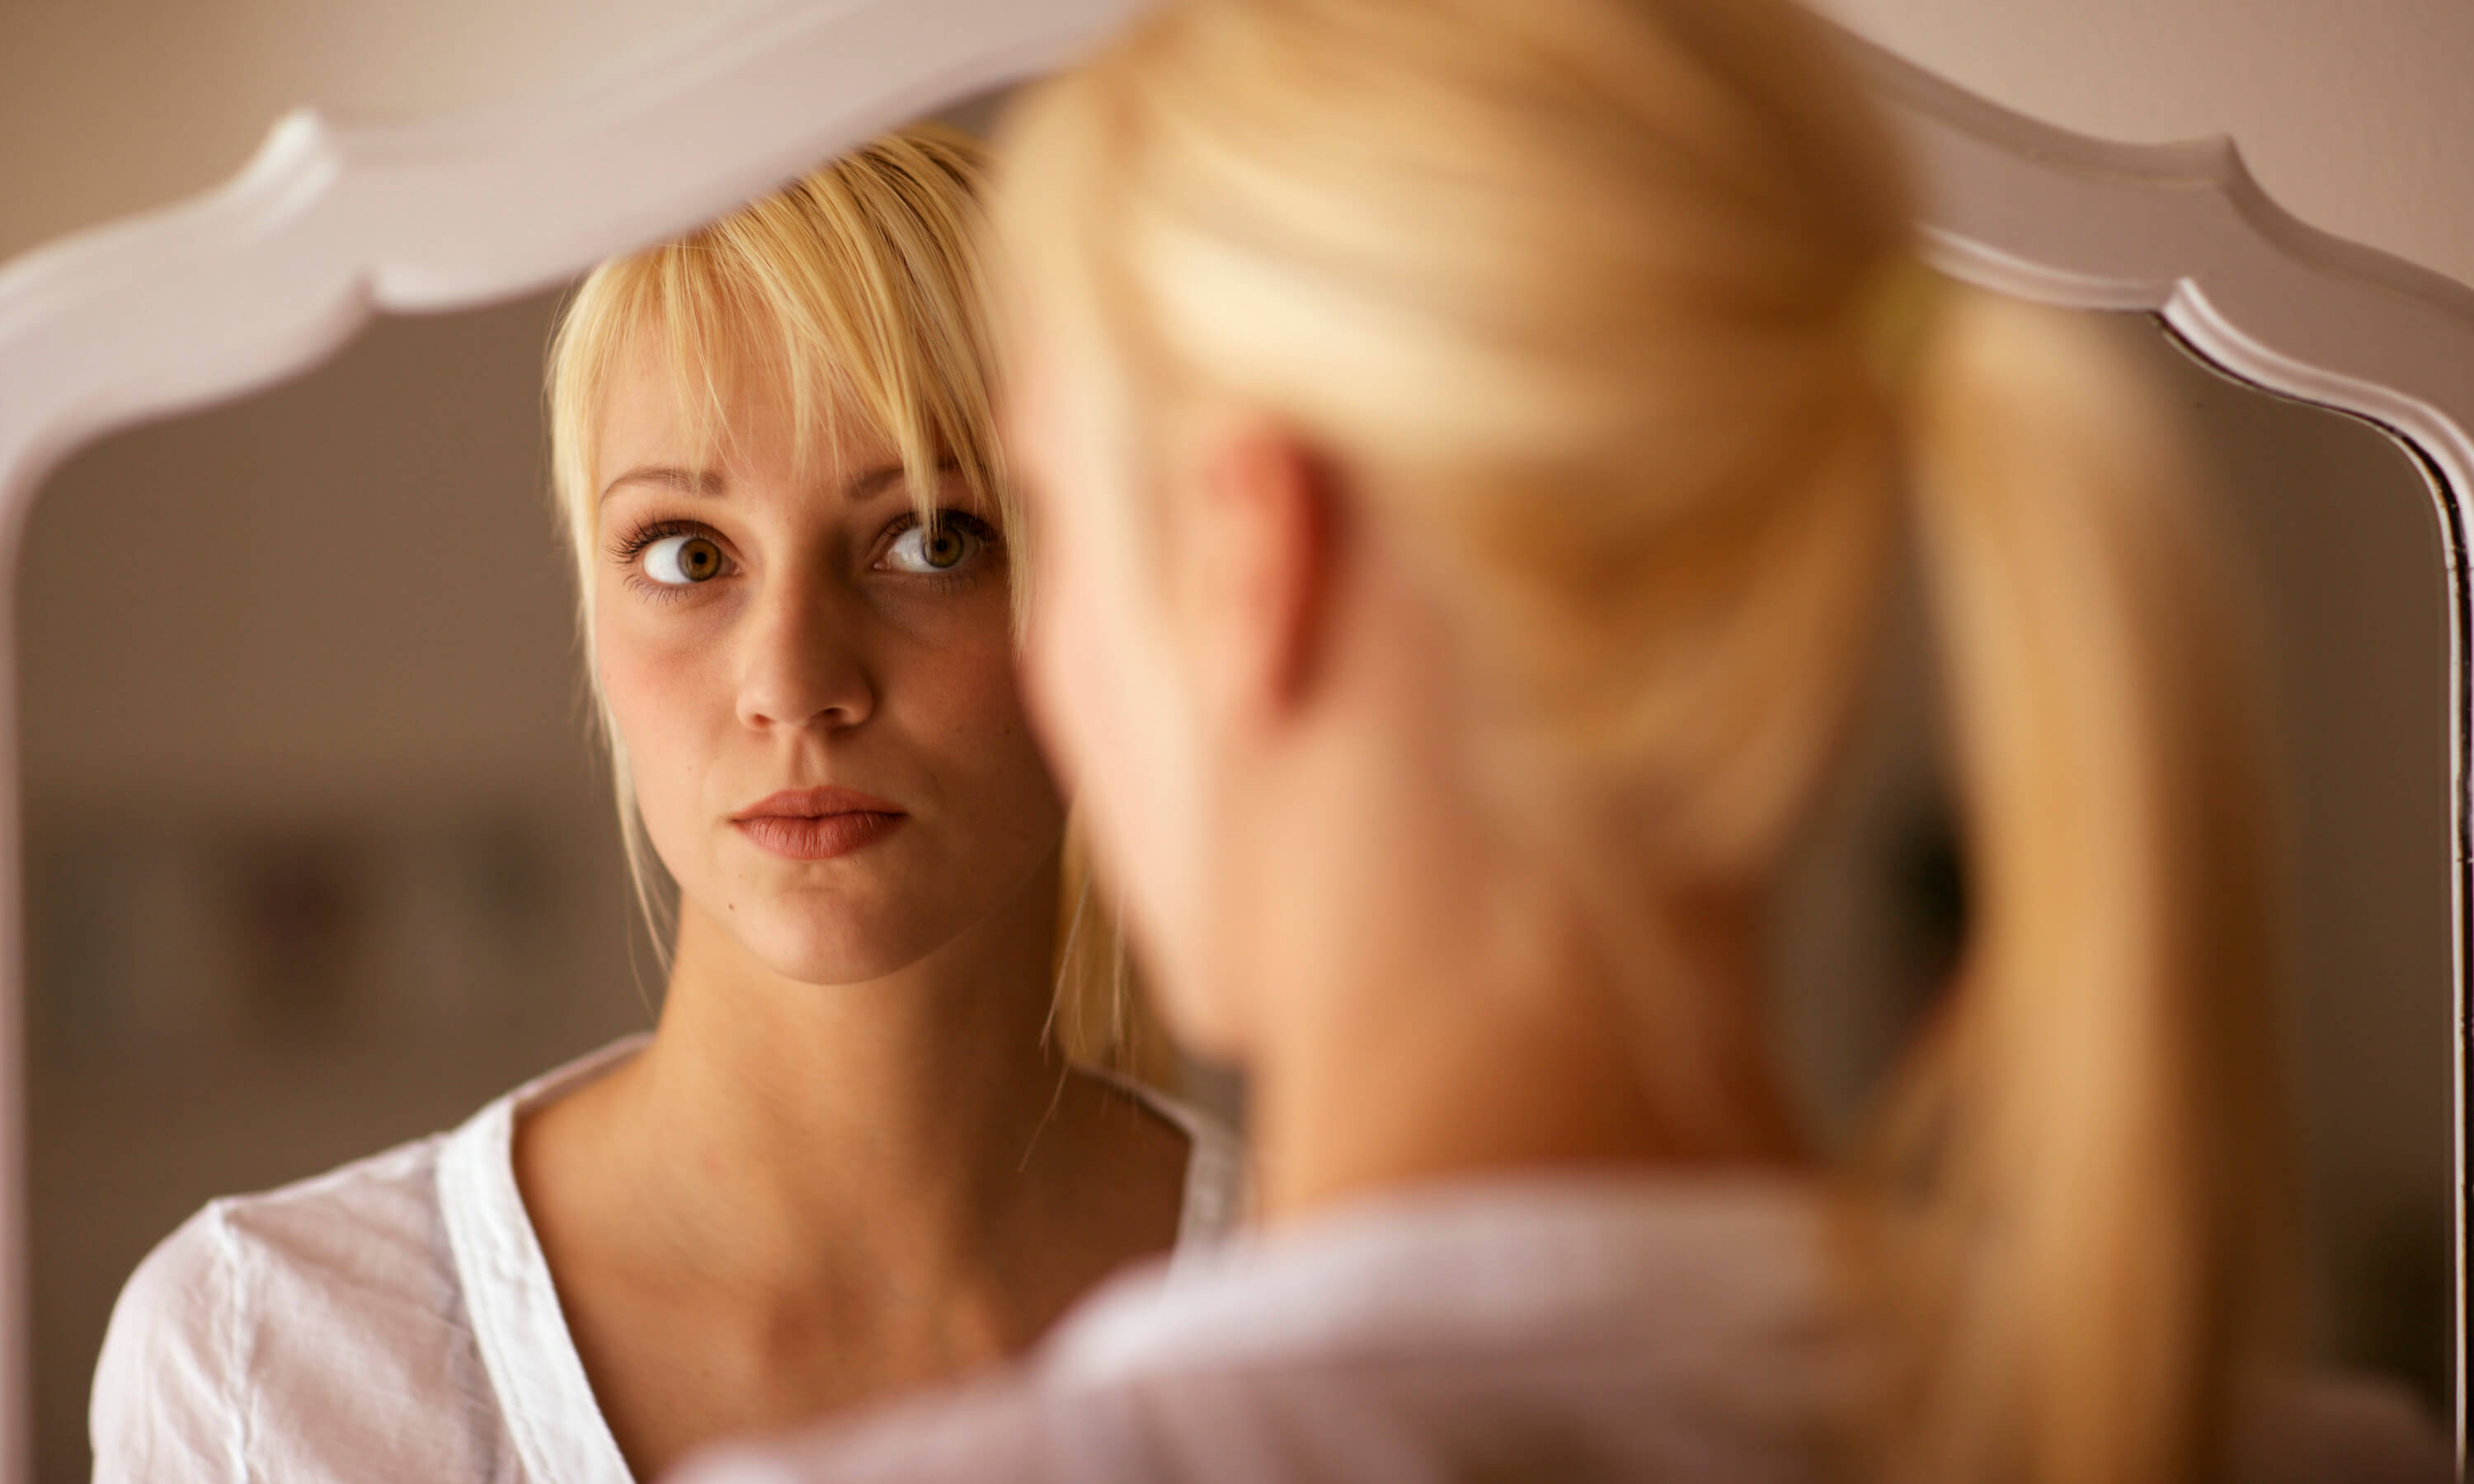 Young Blond Woman Looking in Mirror